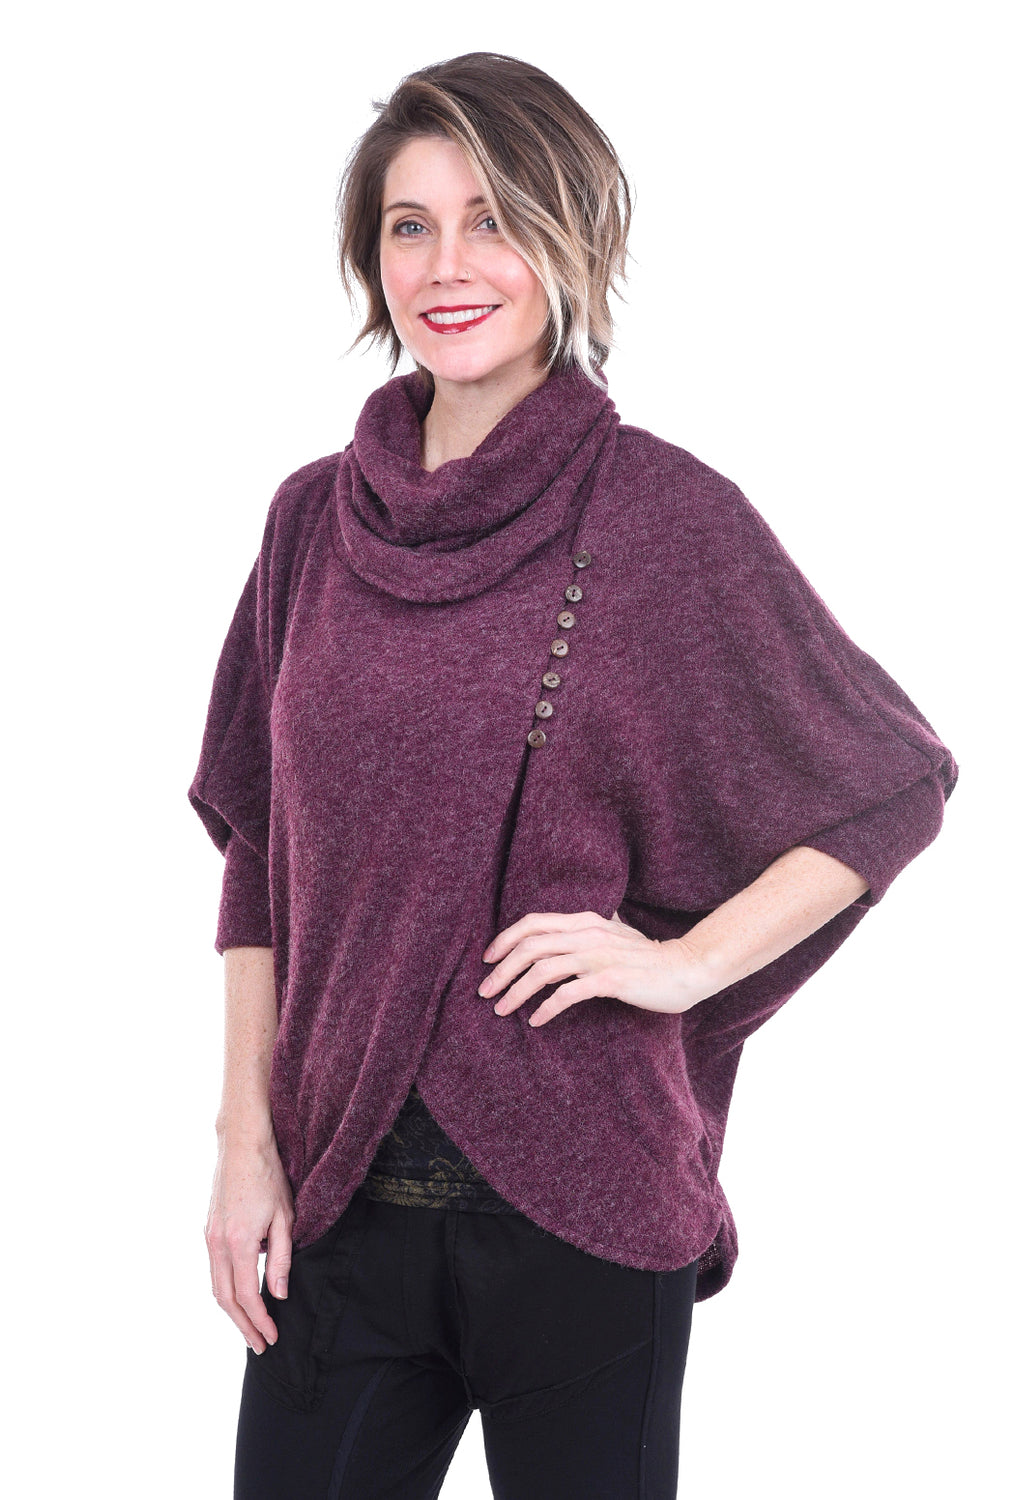 Windhorse Designs Y'Abu Sweater, Merlot One Size Merlot